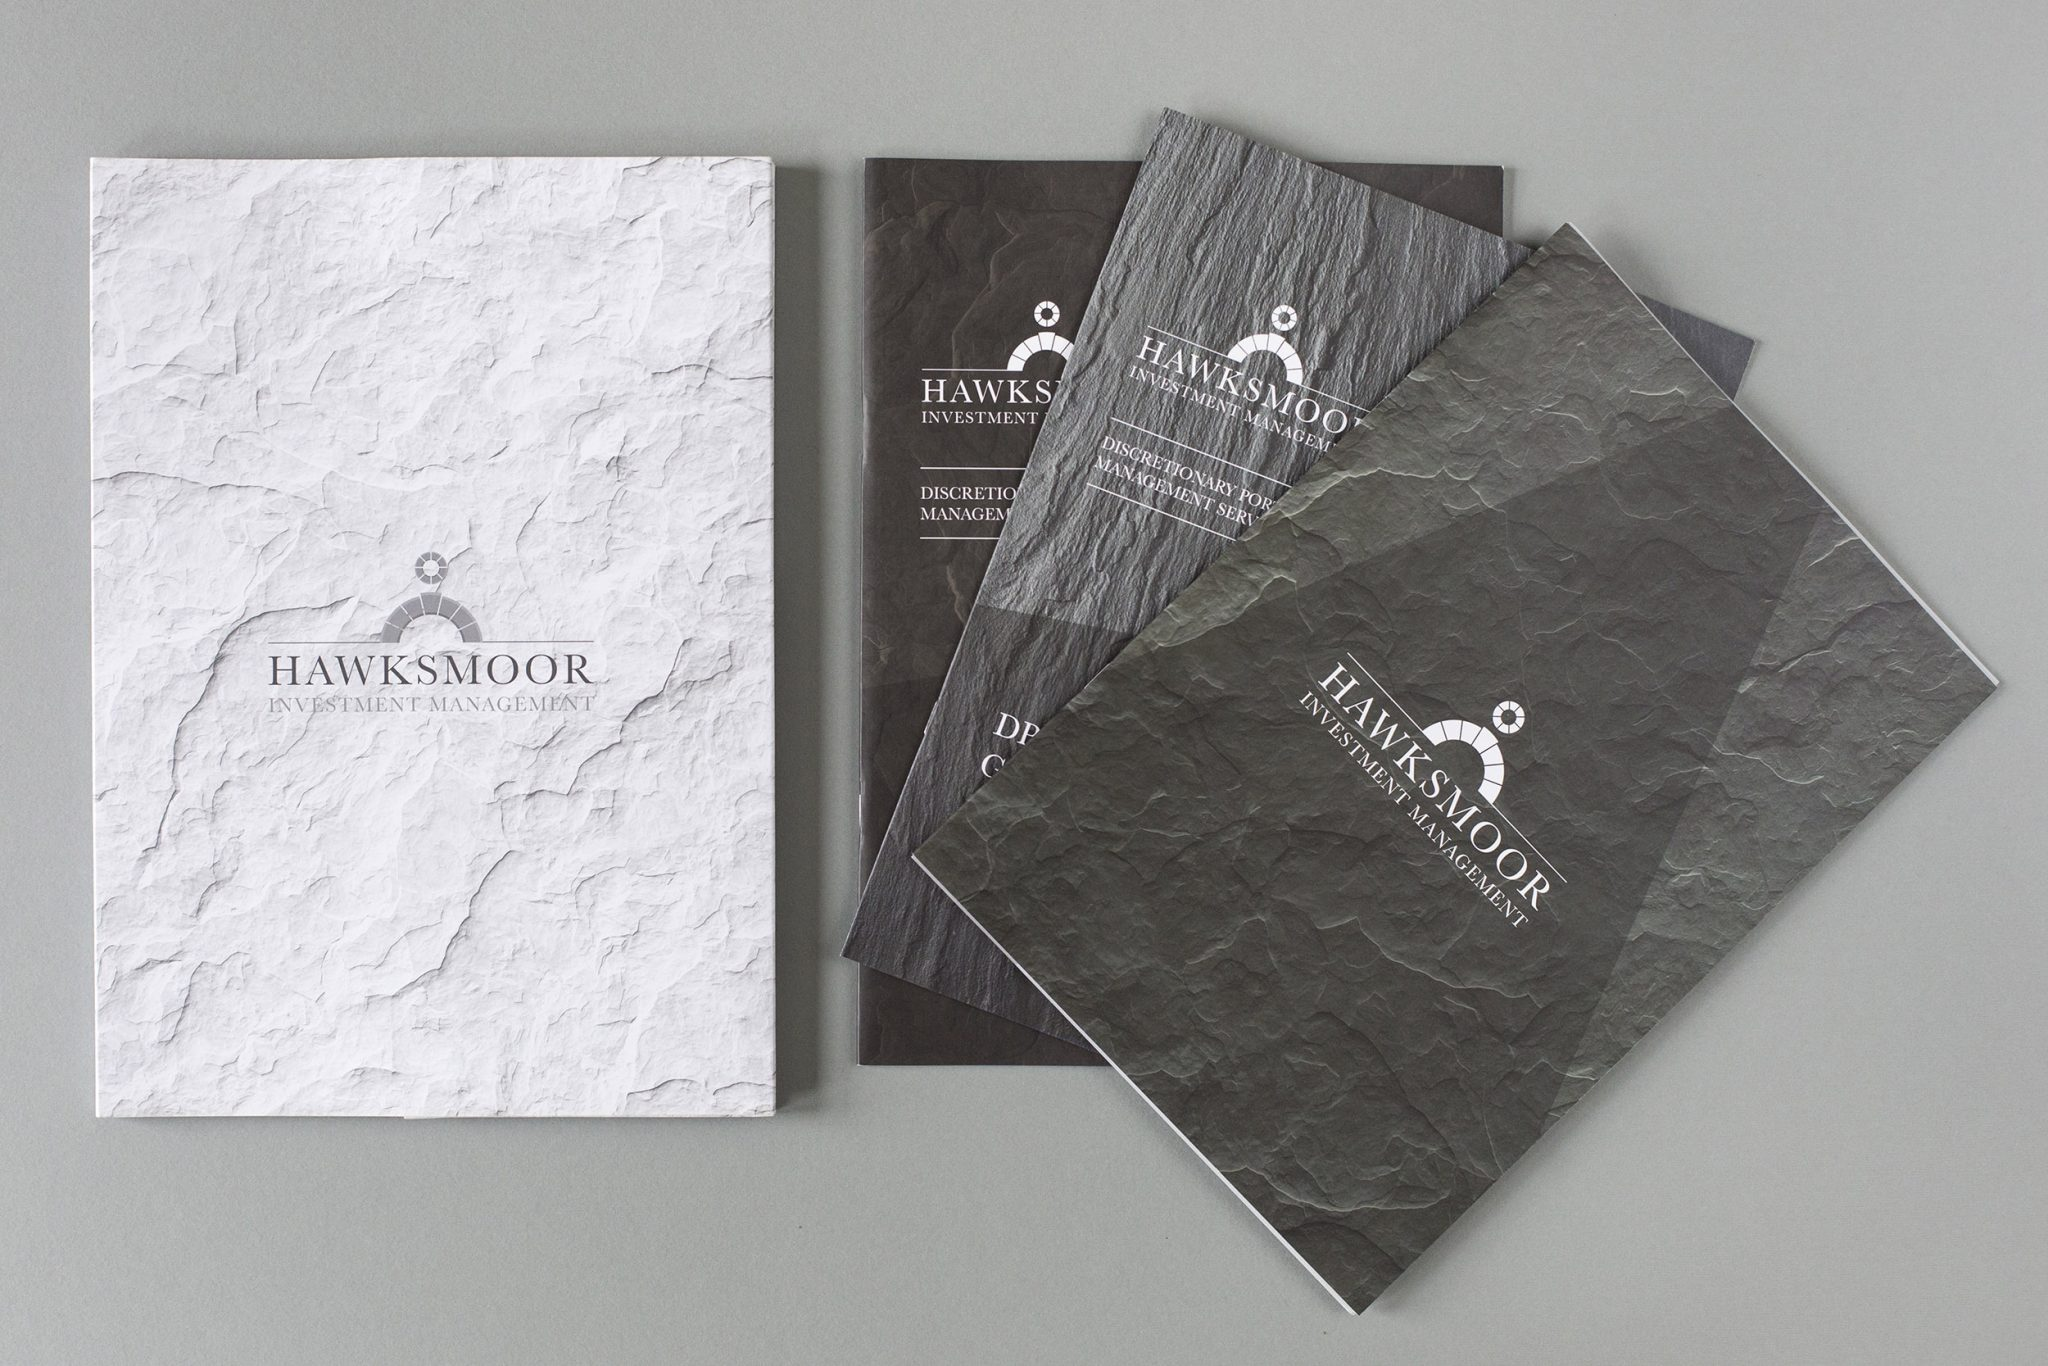 Hawksmoor design and print project